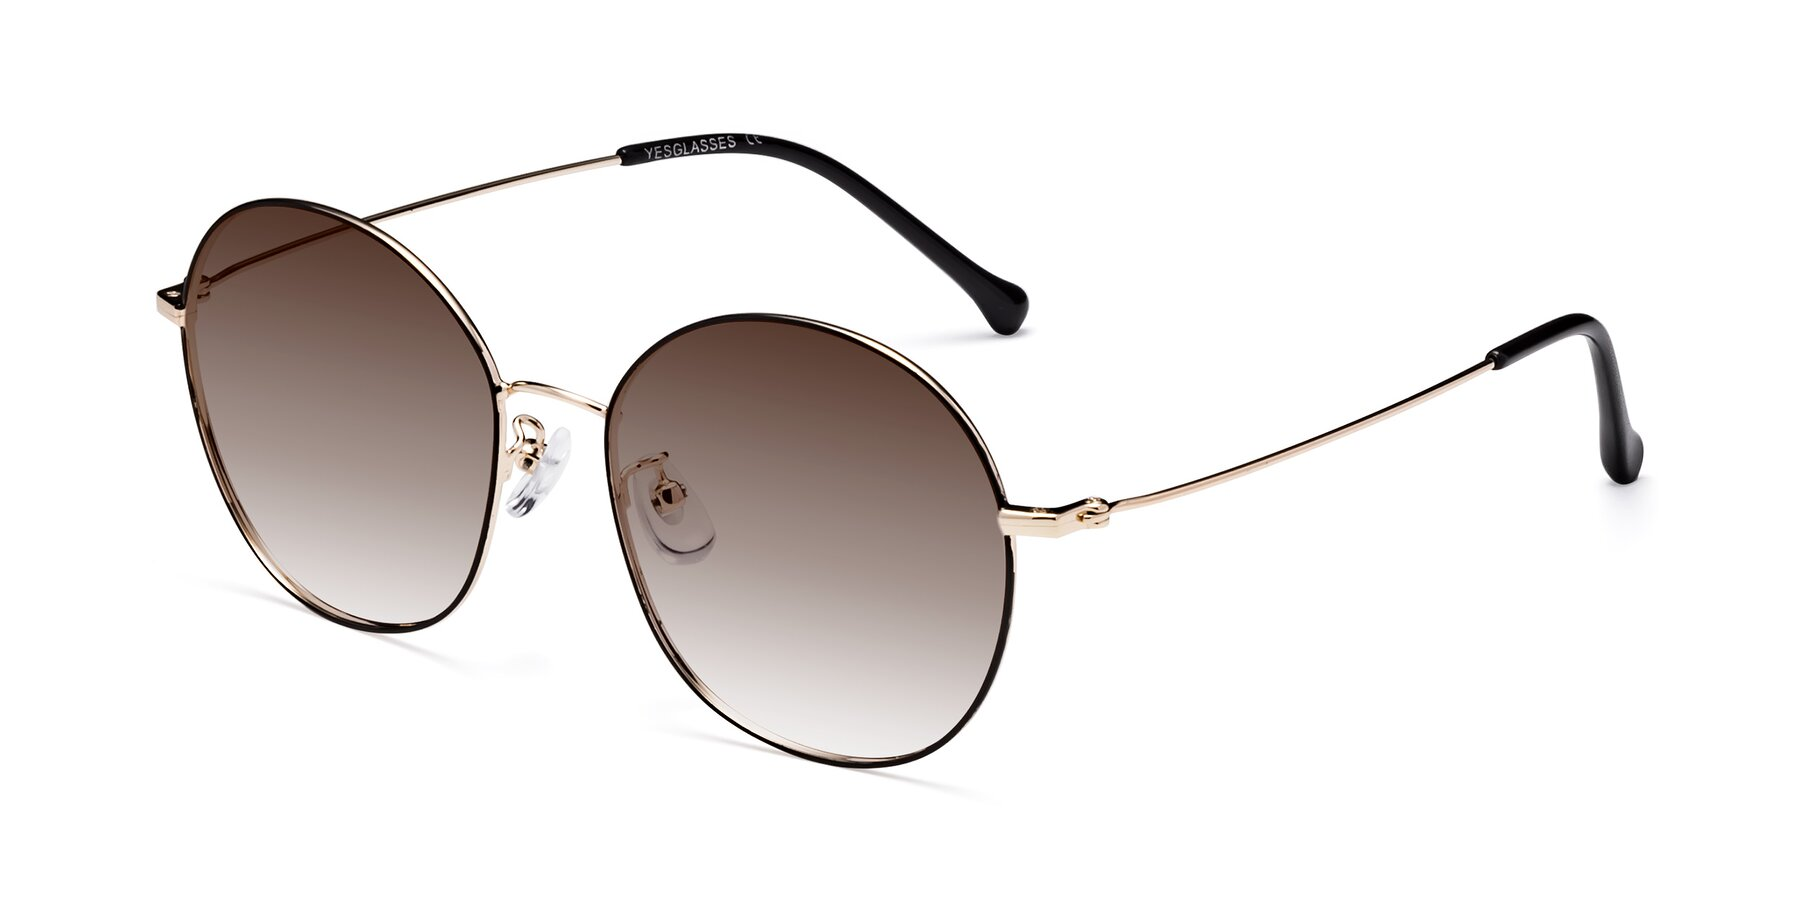 Angle of Dallas in Black-Gold with Brown Gradient Lenses